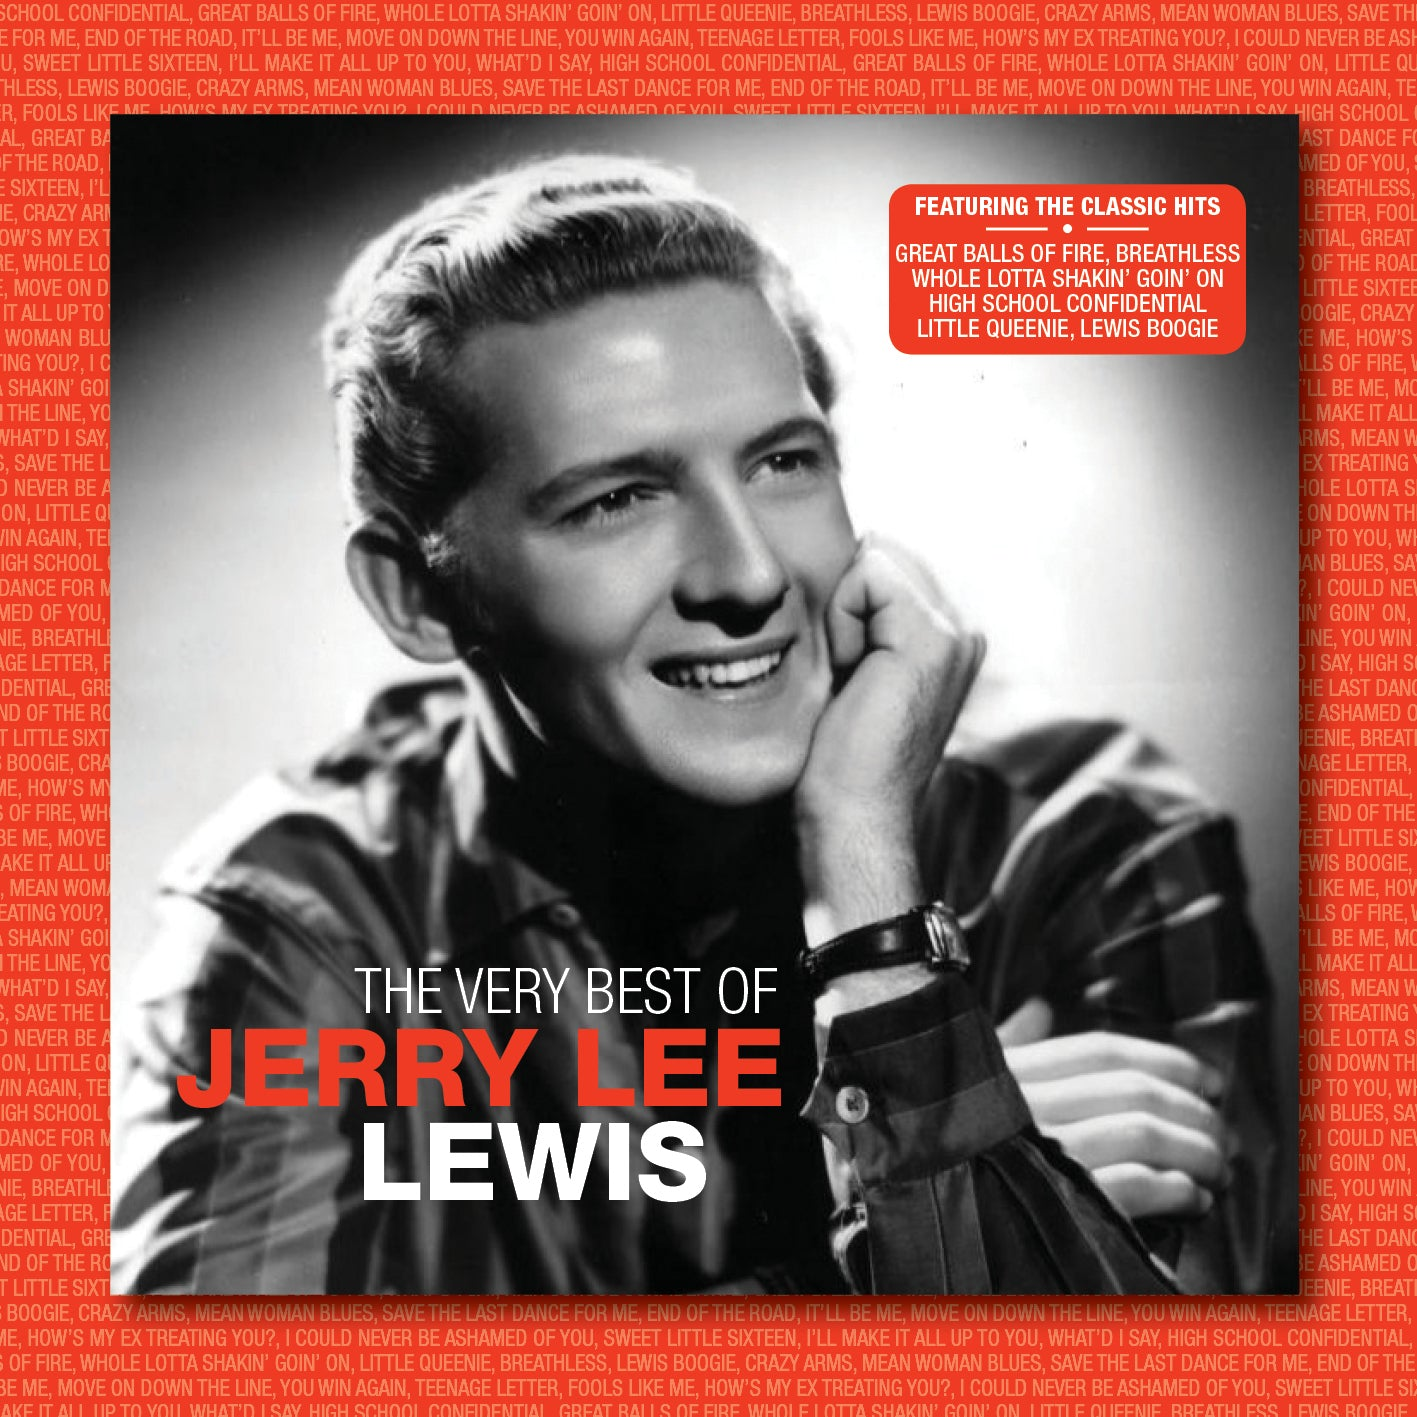 FANFARE160 - JERRY LEE LEWIS - THE VERY